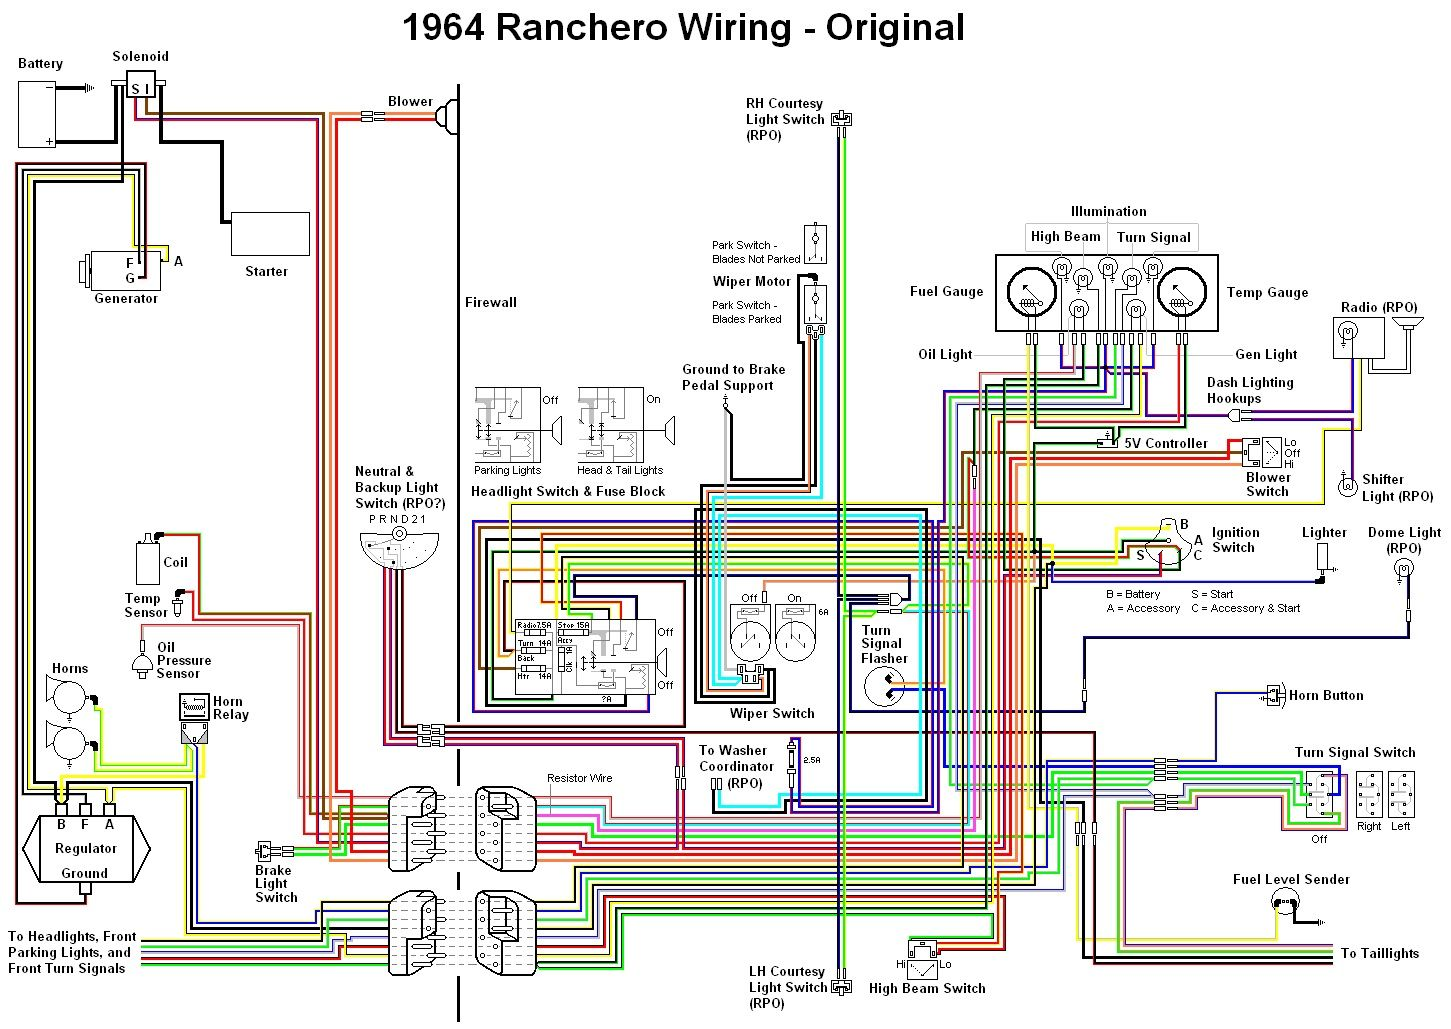 Ford Falcon Ignition Wiring Diagram | wiring diagram |  diode-delta.latinacoupon.it | Ford Falcon Wiring Diagram |  | wiring diagram